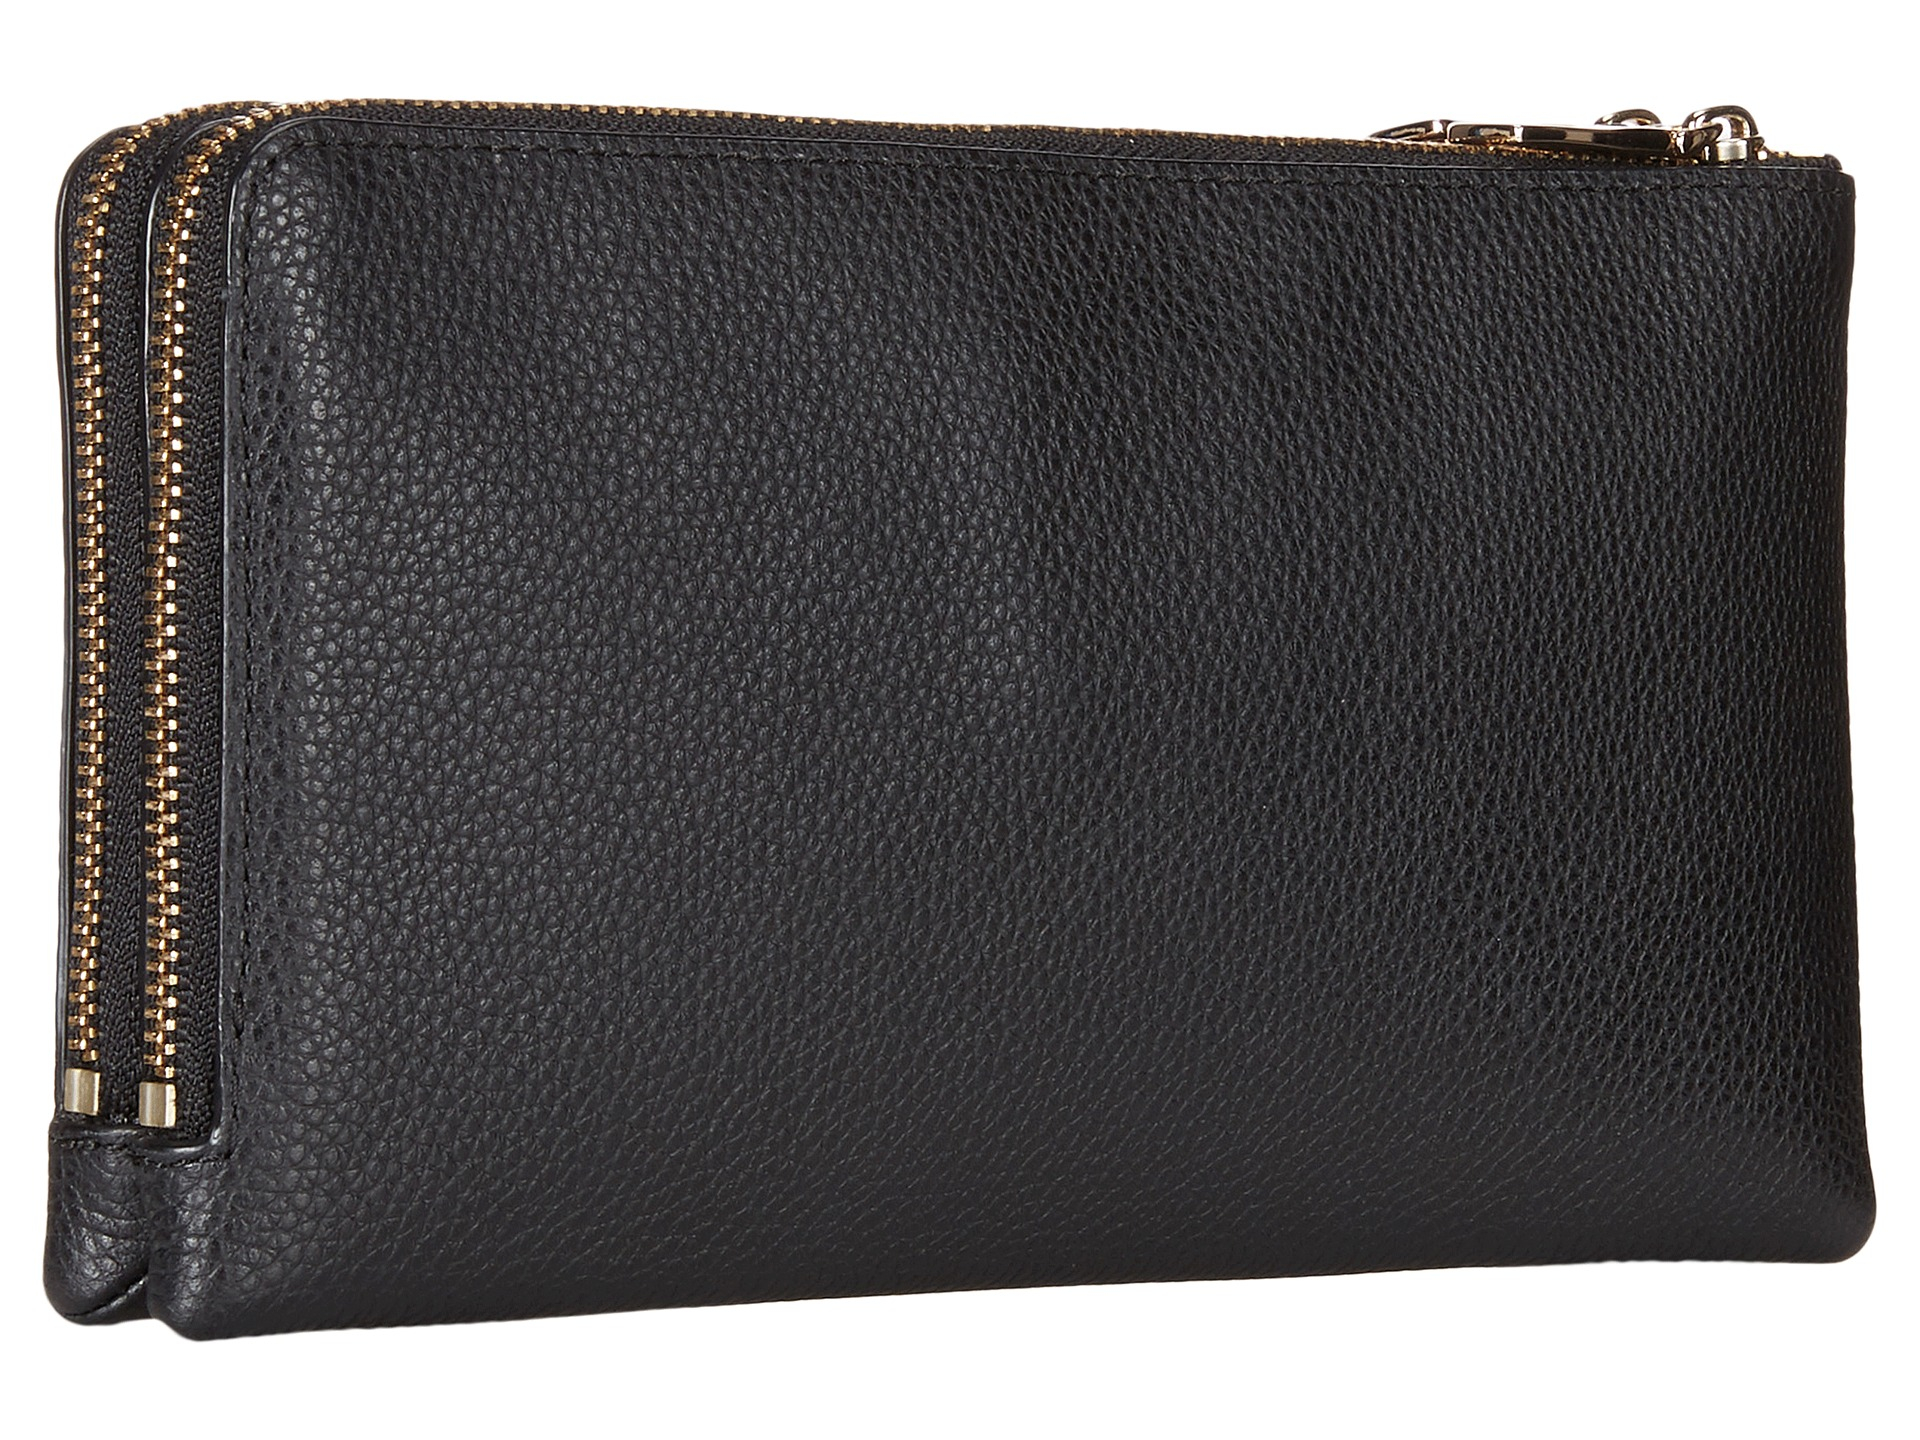 coach polished pebbled leather double zip wallet in black